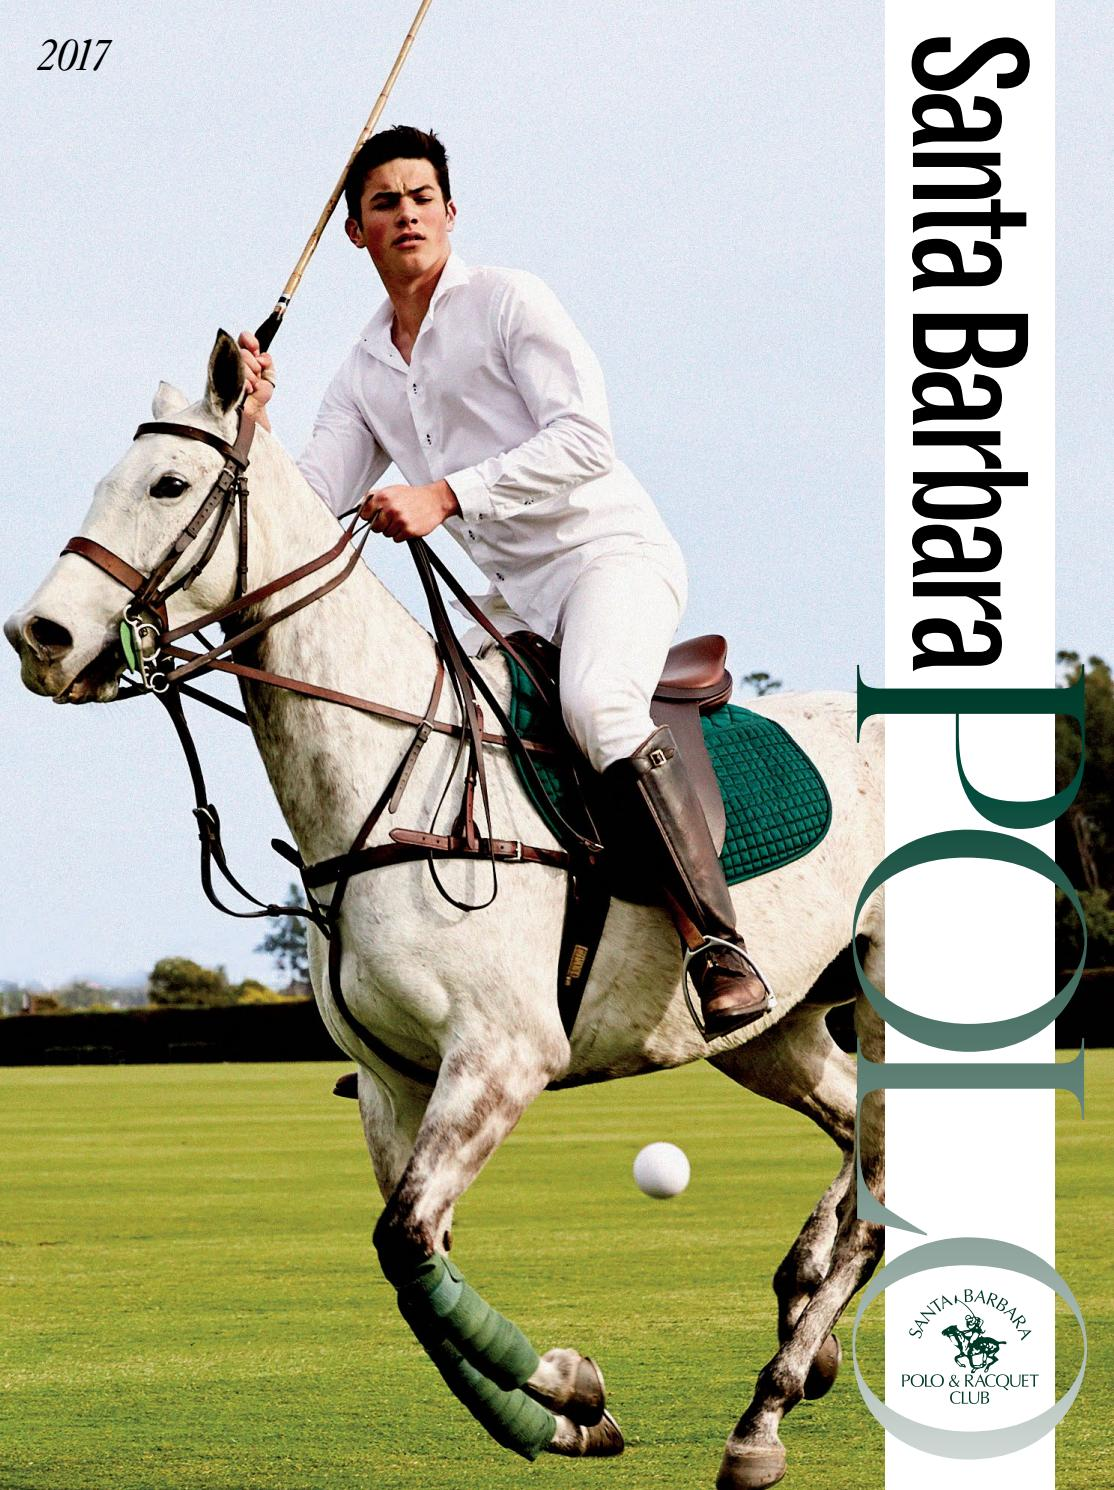 Sue Sally Hale Legendary American Polo Pioneer, broke the gender barrier in Polo